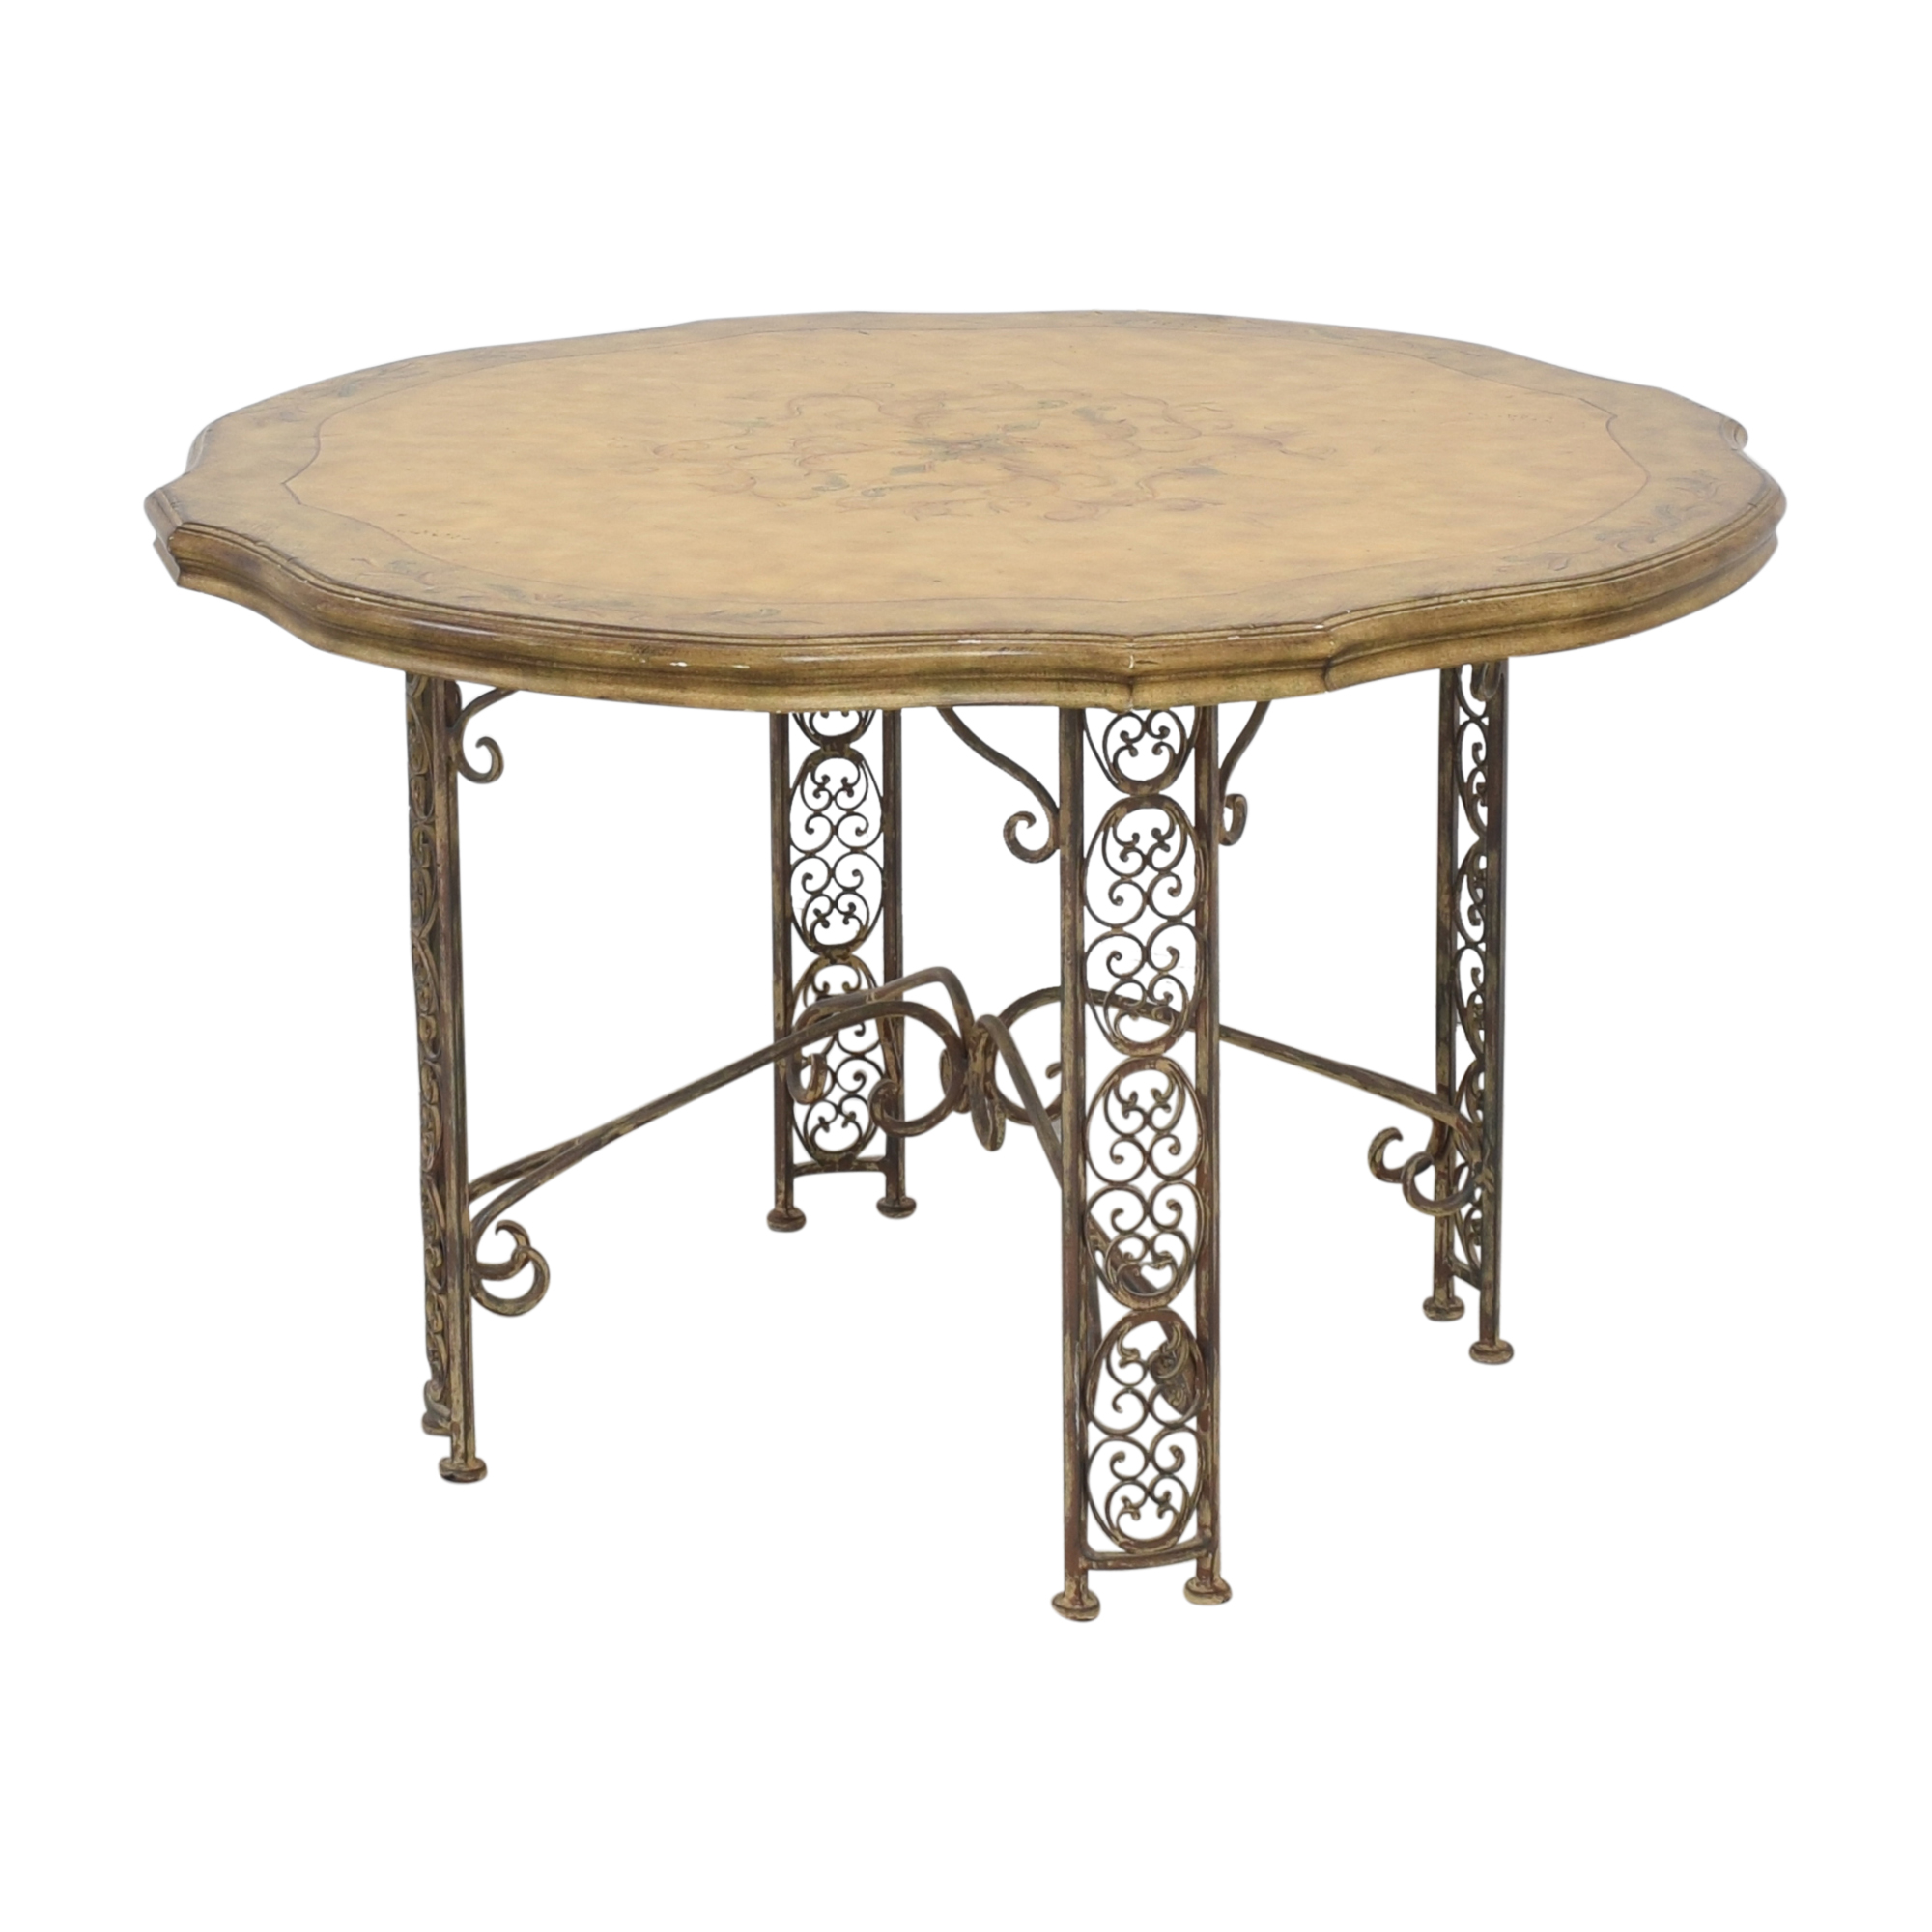 Domain Domain Decorative Round Dining Table price